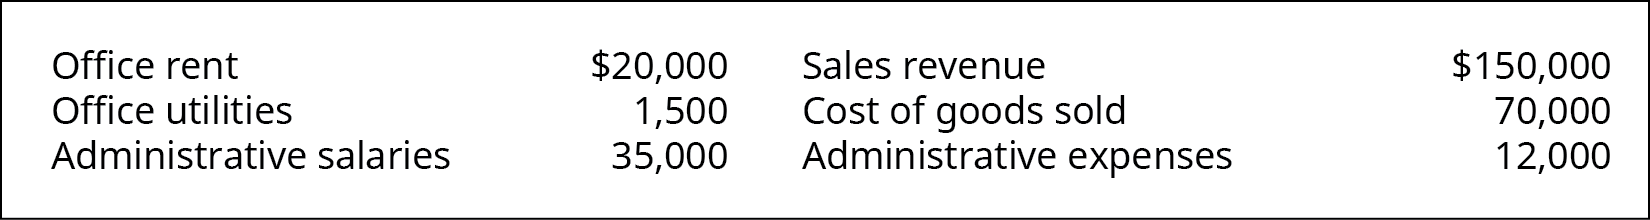 Office rent $20,000, Office utilities 1,500, Administrative salaries 35,000, Sales Revenue 150,000, Cost of Goods Sold 70,000, Administrative expenses 12,000.